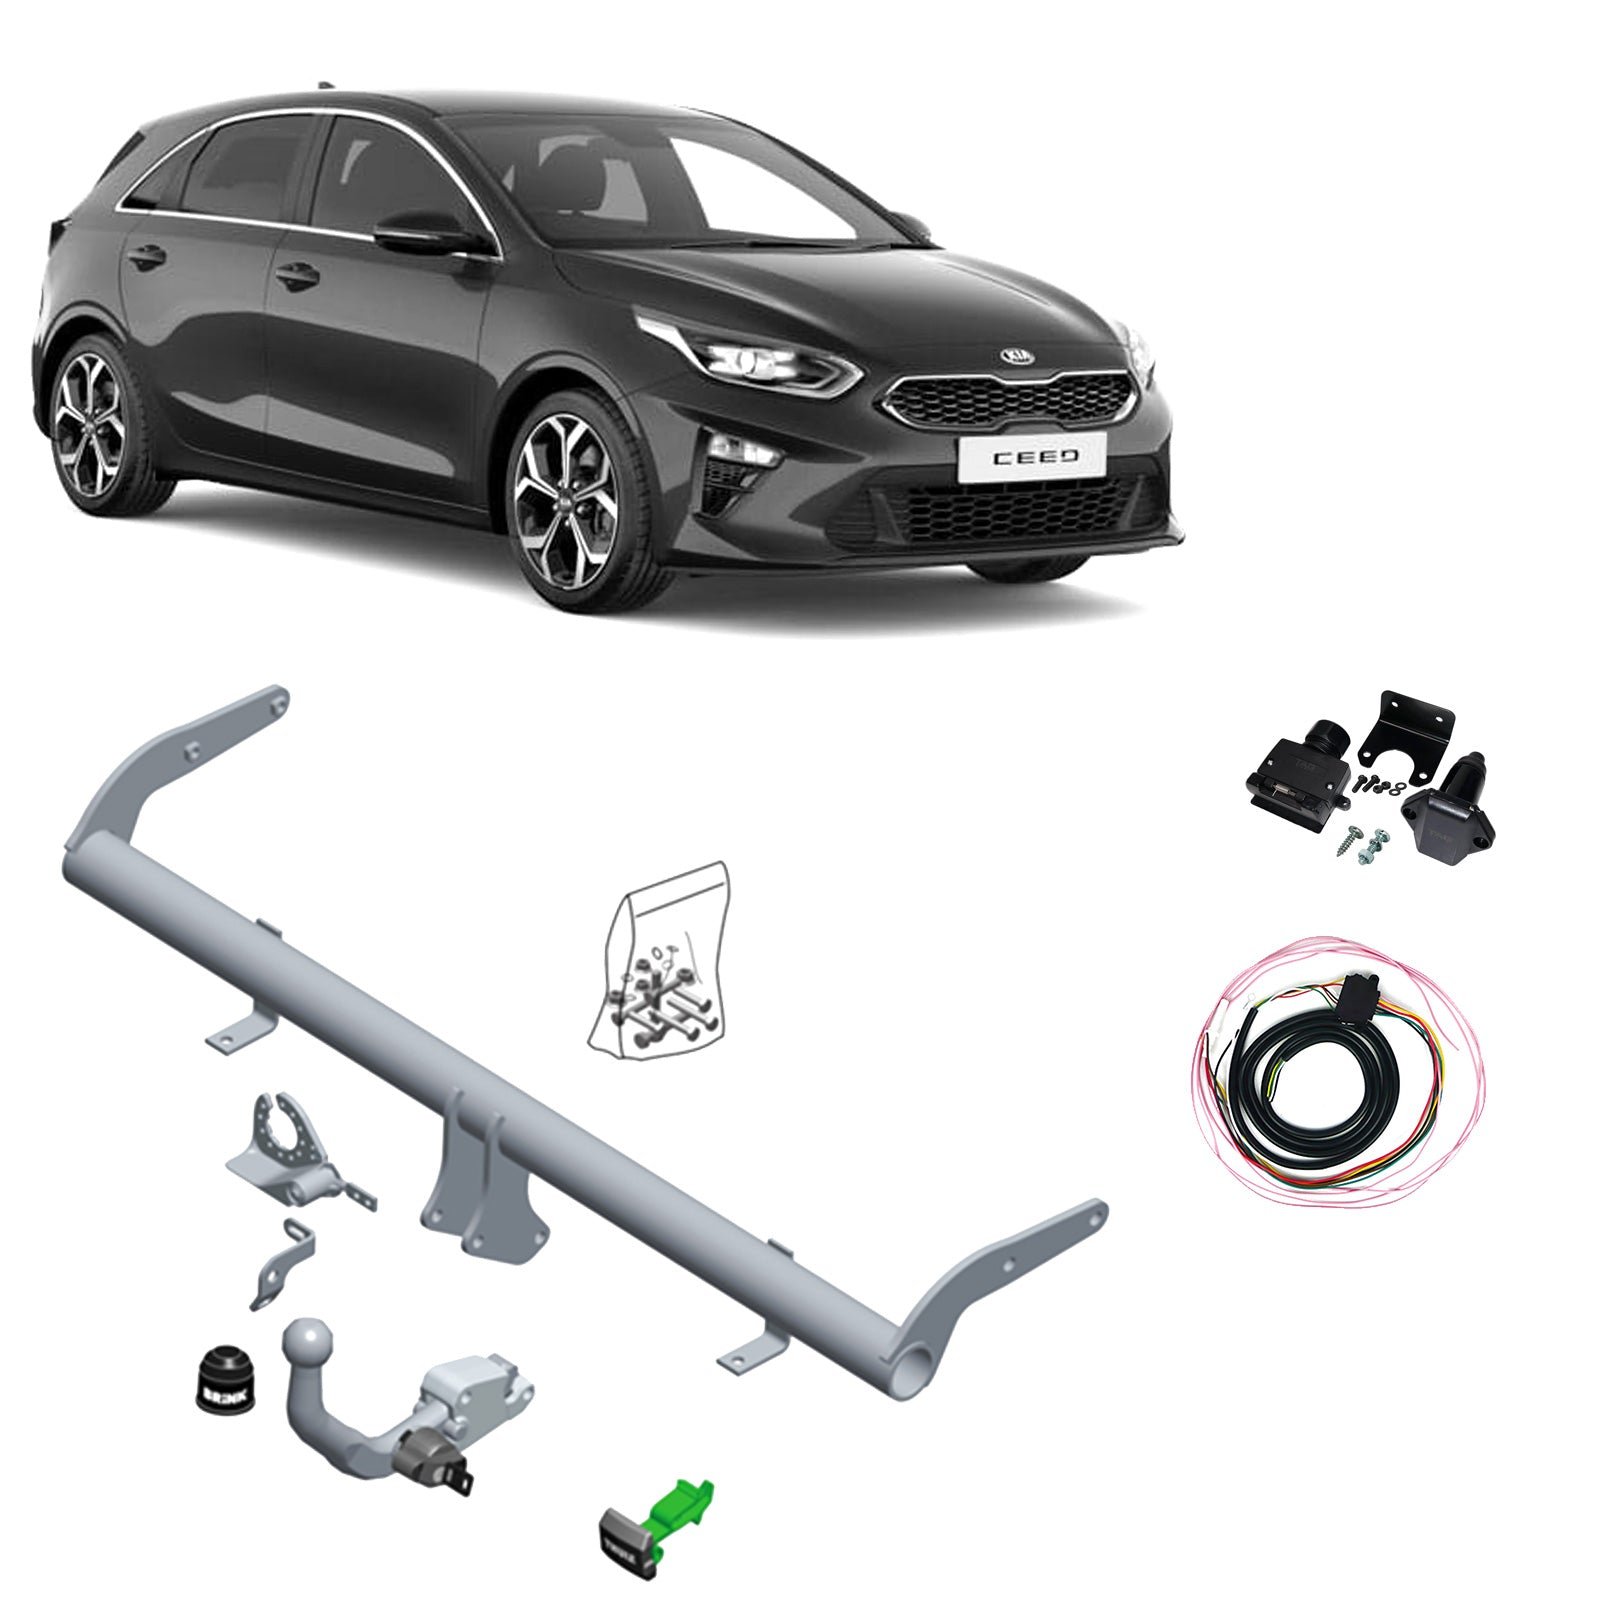 Brink Towbar to suit KIA Ceed (03/2018 - on)